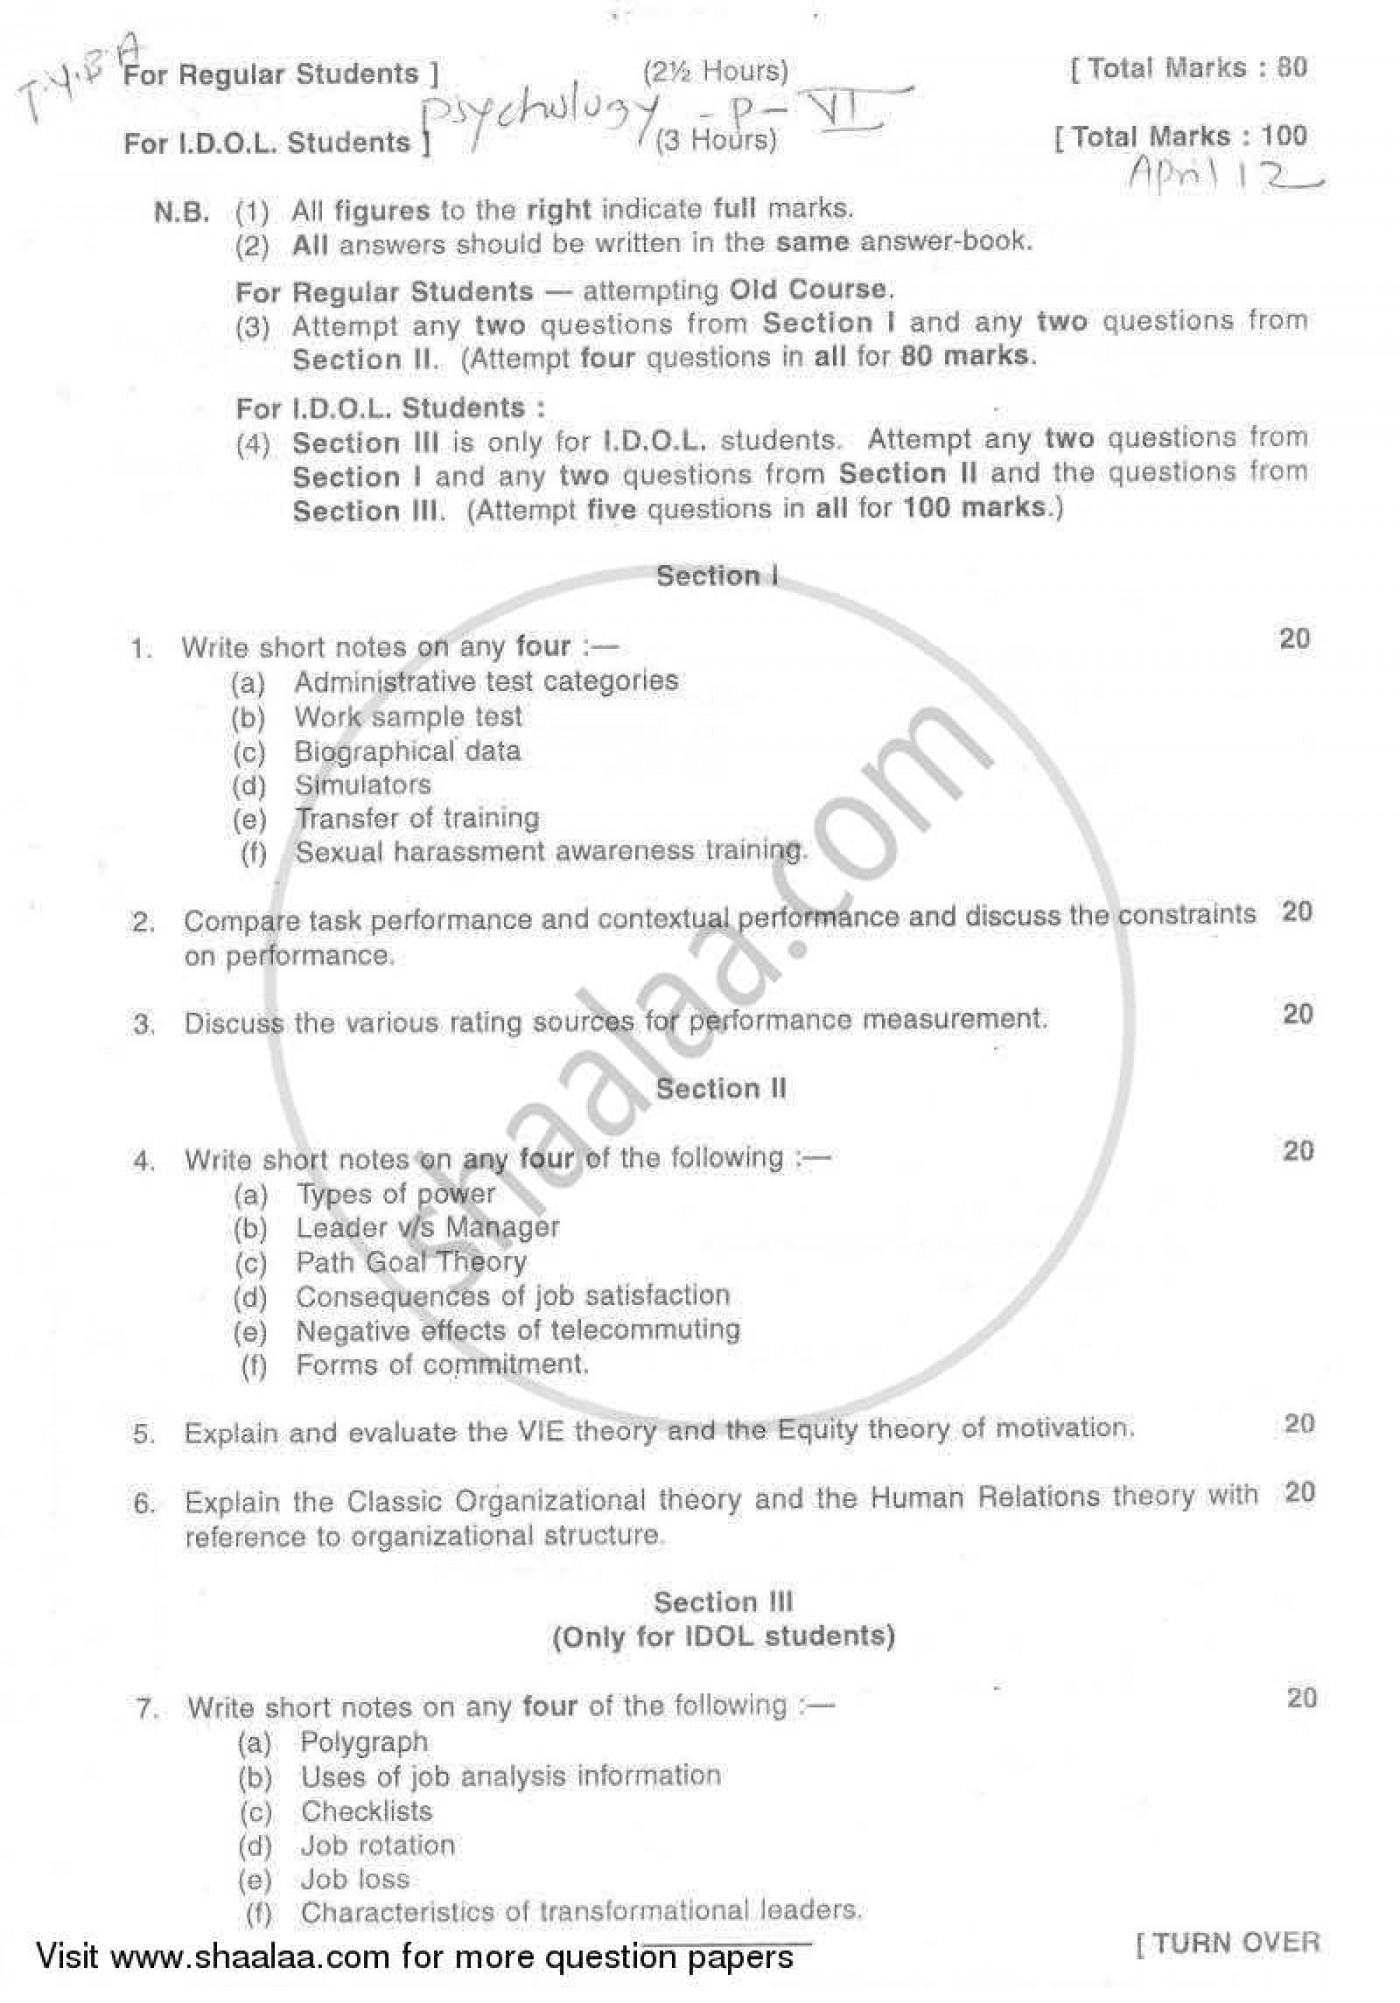 017 Psychologyearch Paper On Dreams University Of Mumbai Bachelor Industrial Organizational T Y Yearly Pattern Semester Tyba 2011 29a03925dfc524f2aa4cb10e4d3da996a Singular Psychology Research Articles Topics 1400